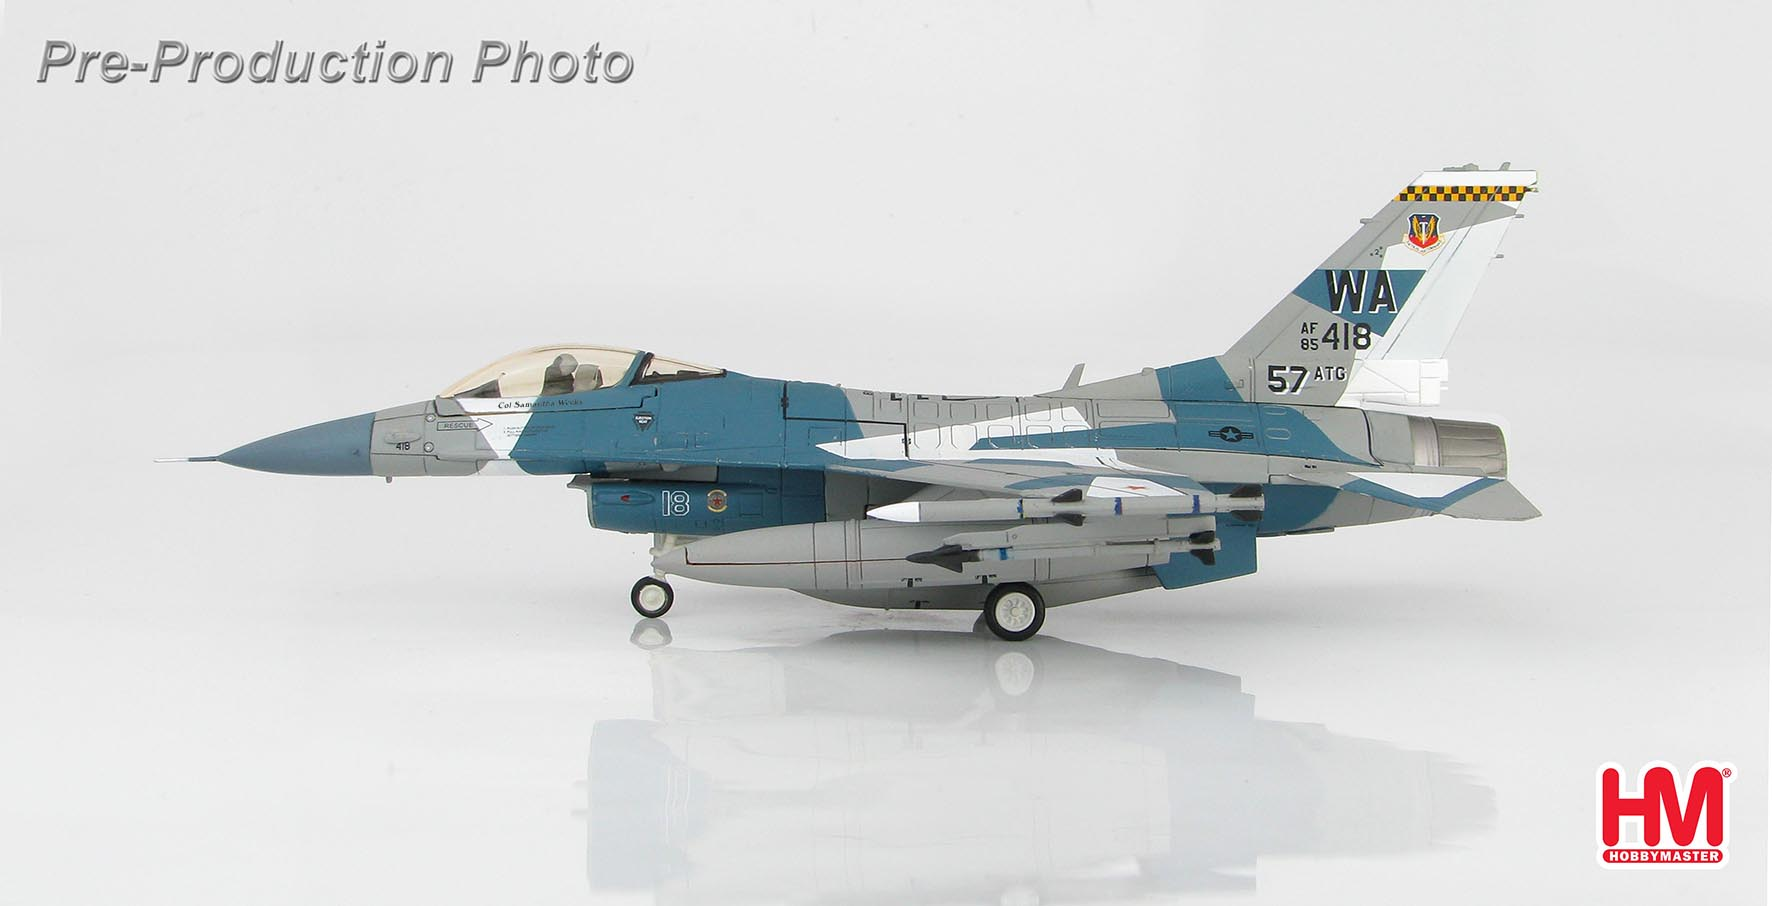 F-16C Fighting Falcon, 85-0418, 57th Wing, 64th Aggressor Sqn., Nellis AFB, Sept 2016 (1:72) - Preorder item, order now for future delivery